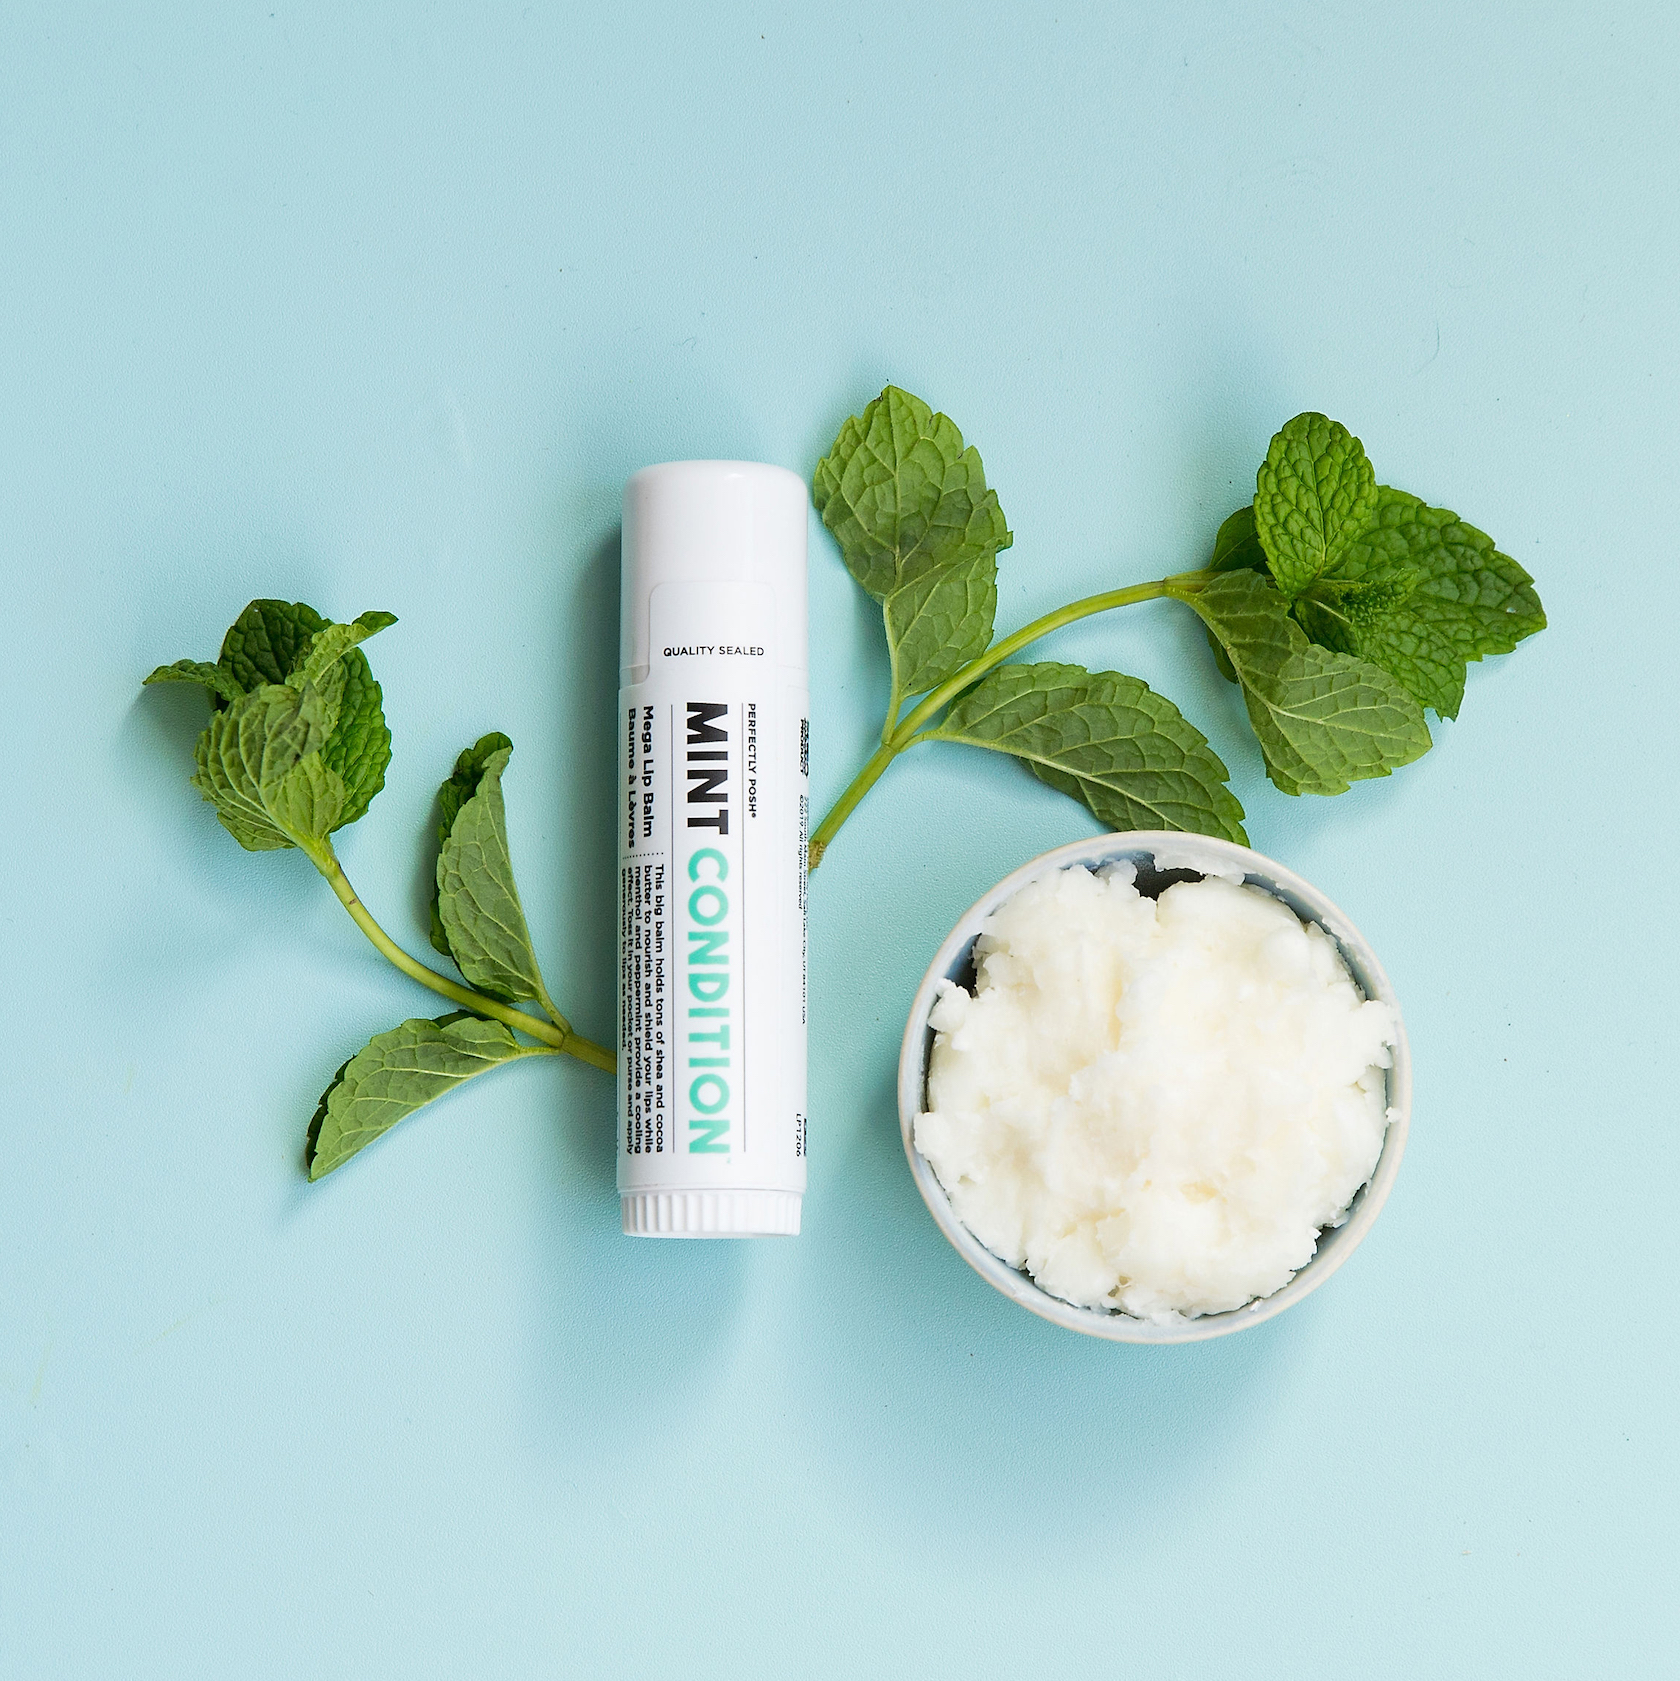 Perfectly Posh Mint Condition Lip Balm with sustainable shea butter for very dry and chapped lips